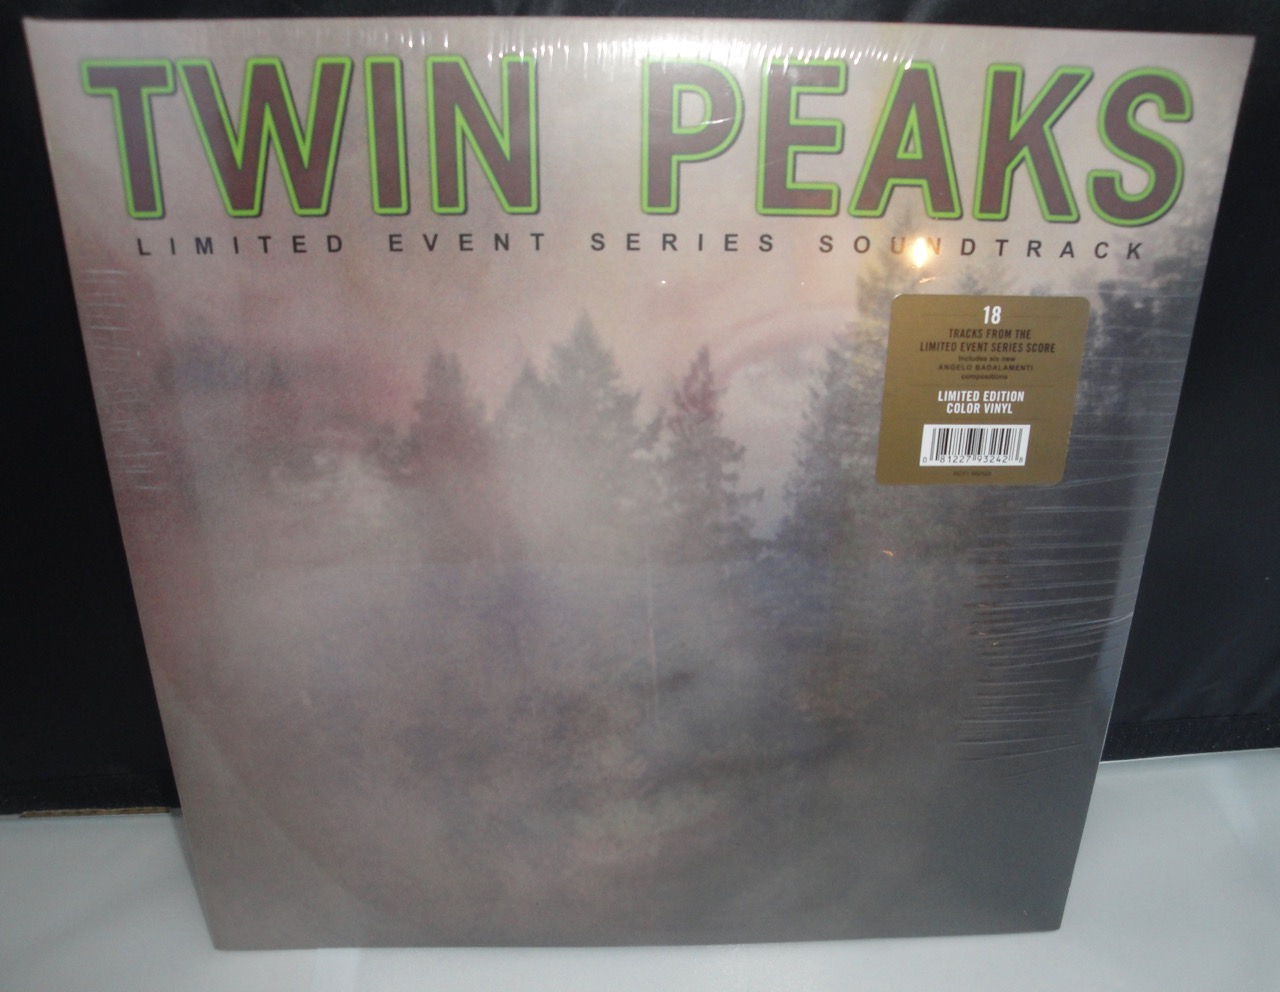 Twin Peaks - Limited Event Series Soundtrack - 140 G, Green Vinyl LP